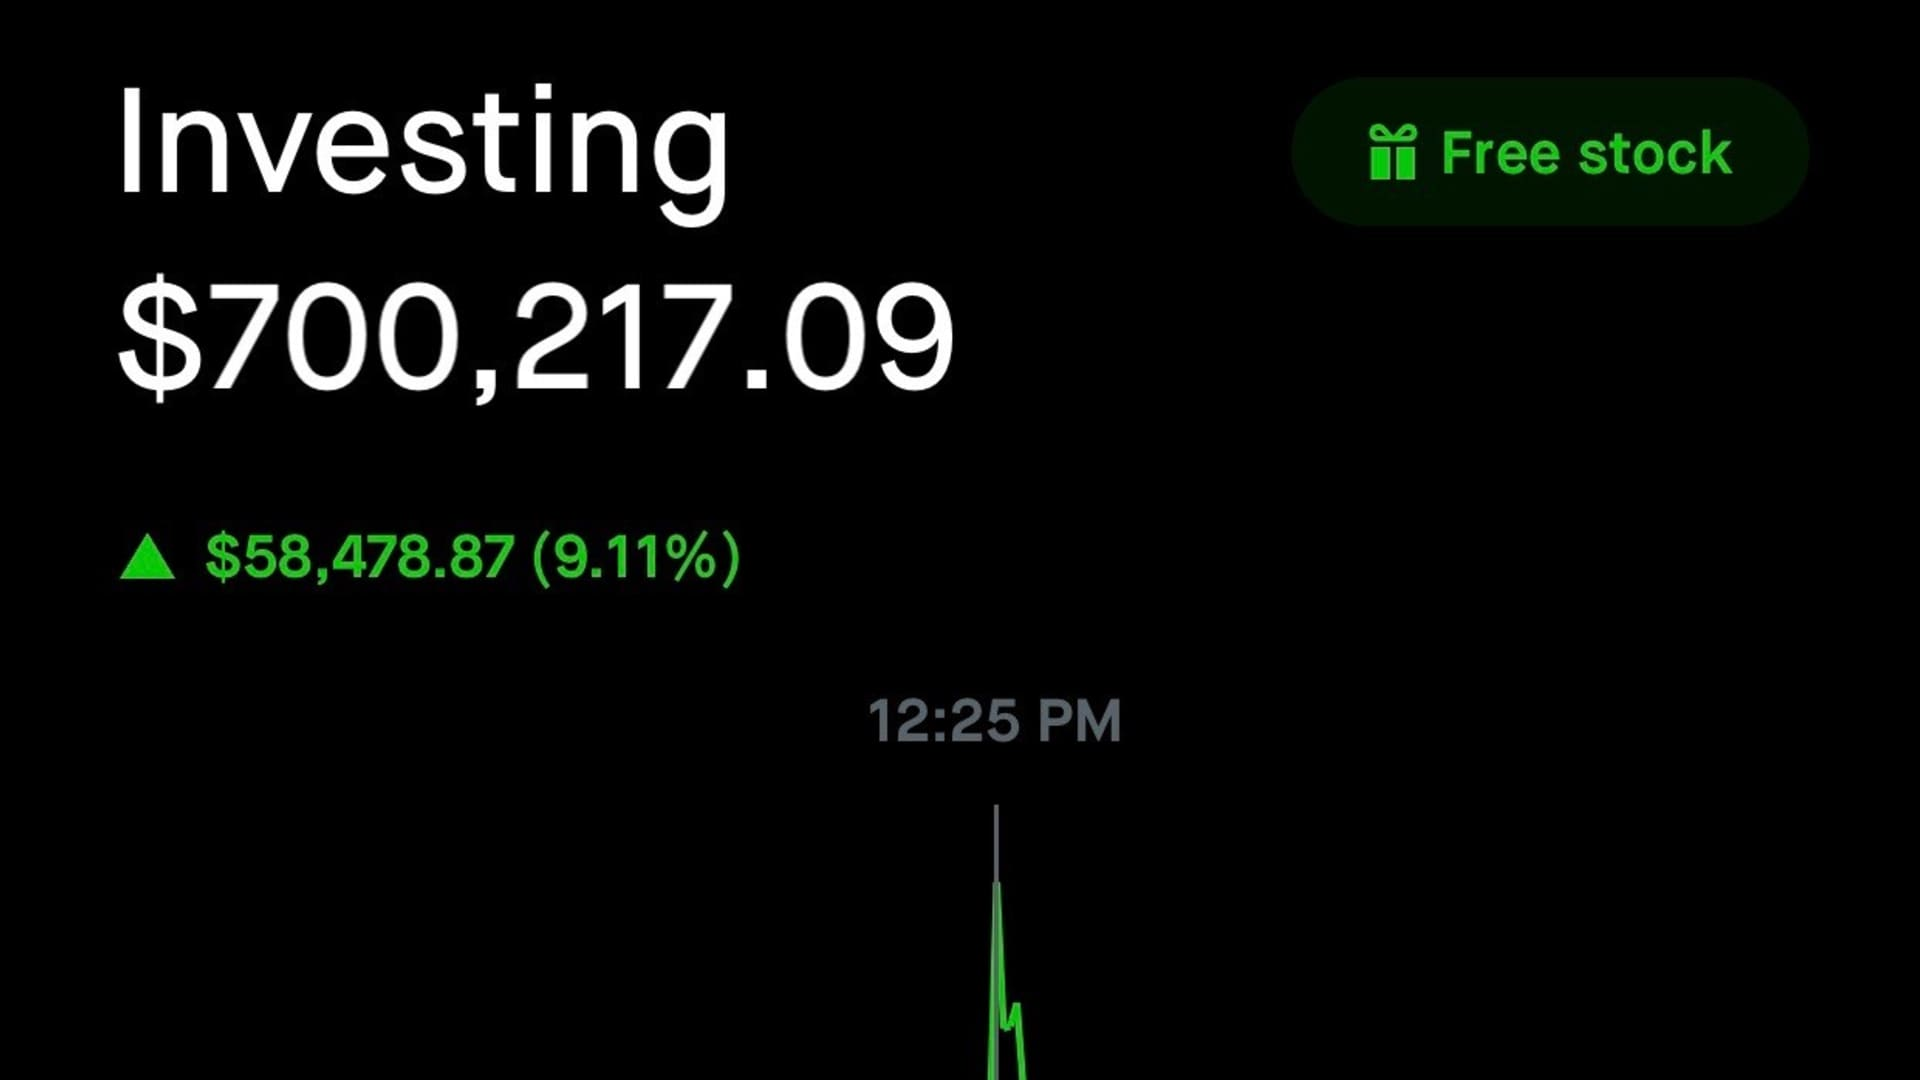 Glauber Contessoto's dogecoin holdings on Robinhood as of July 20 at 2:50 p.m. EST.